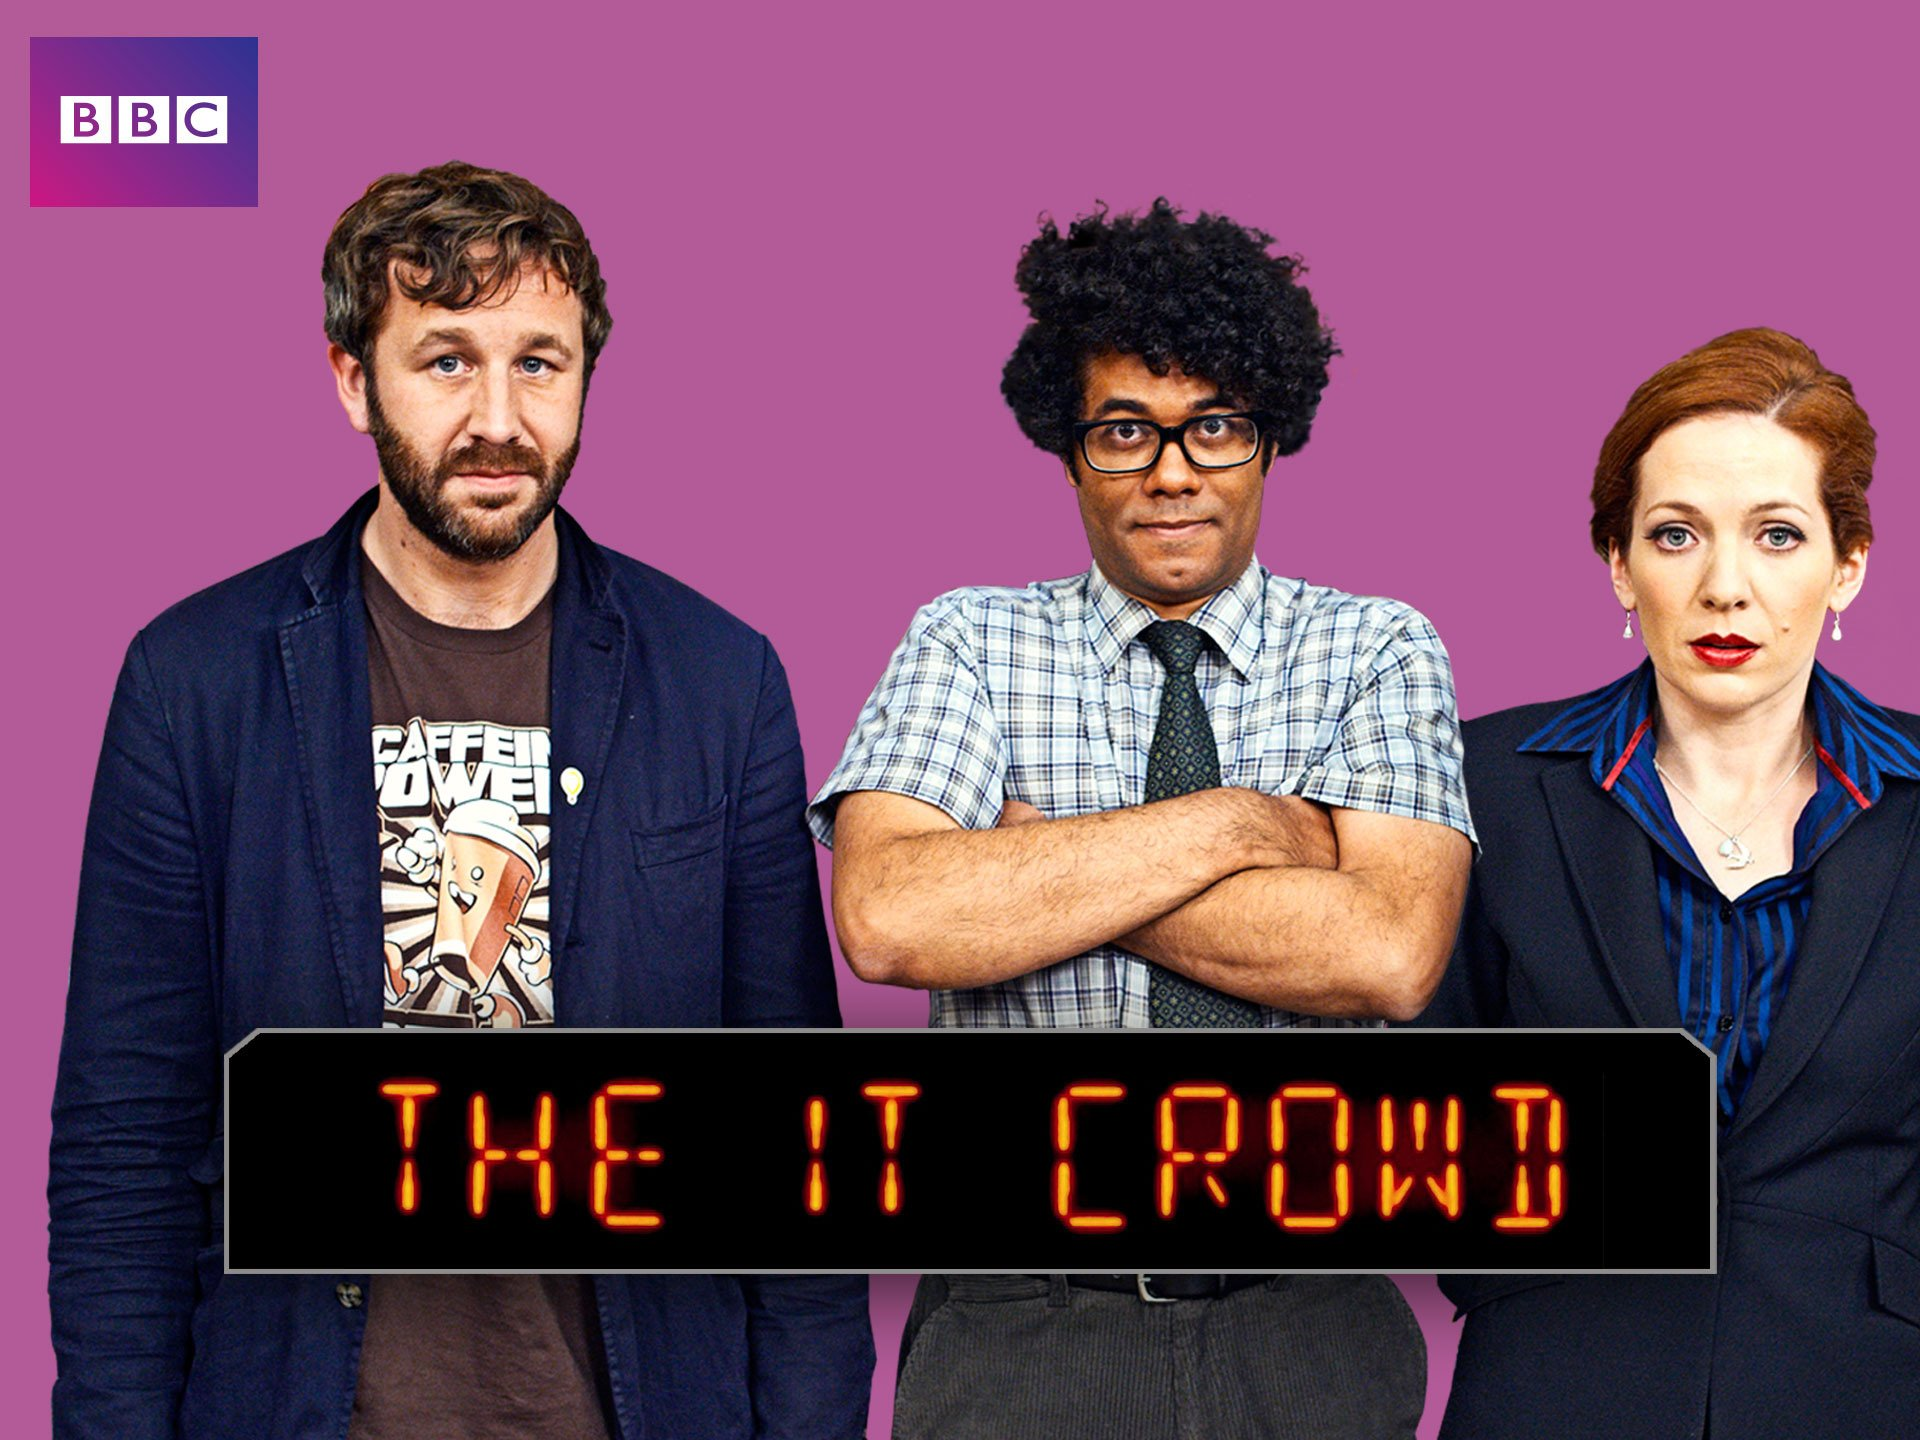 Amazon.com: Watch The IT Crowd Season 5 | Prime Video